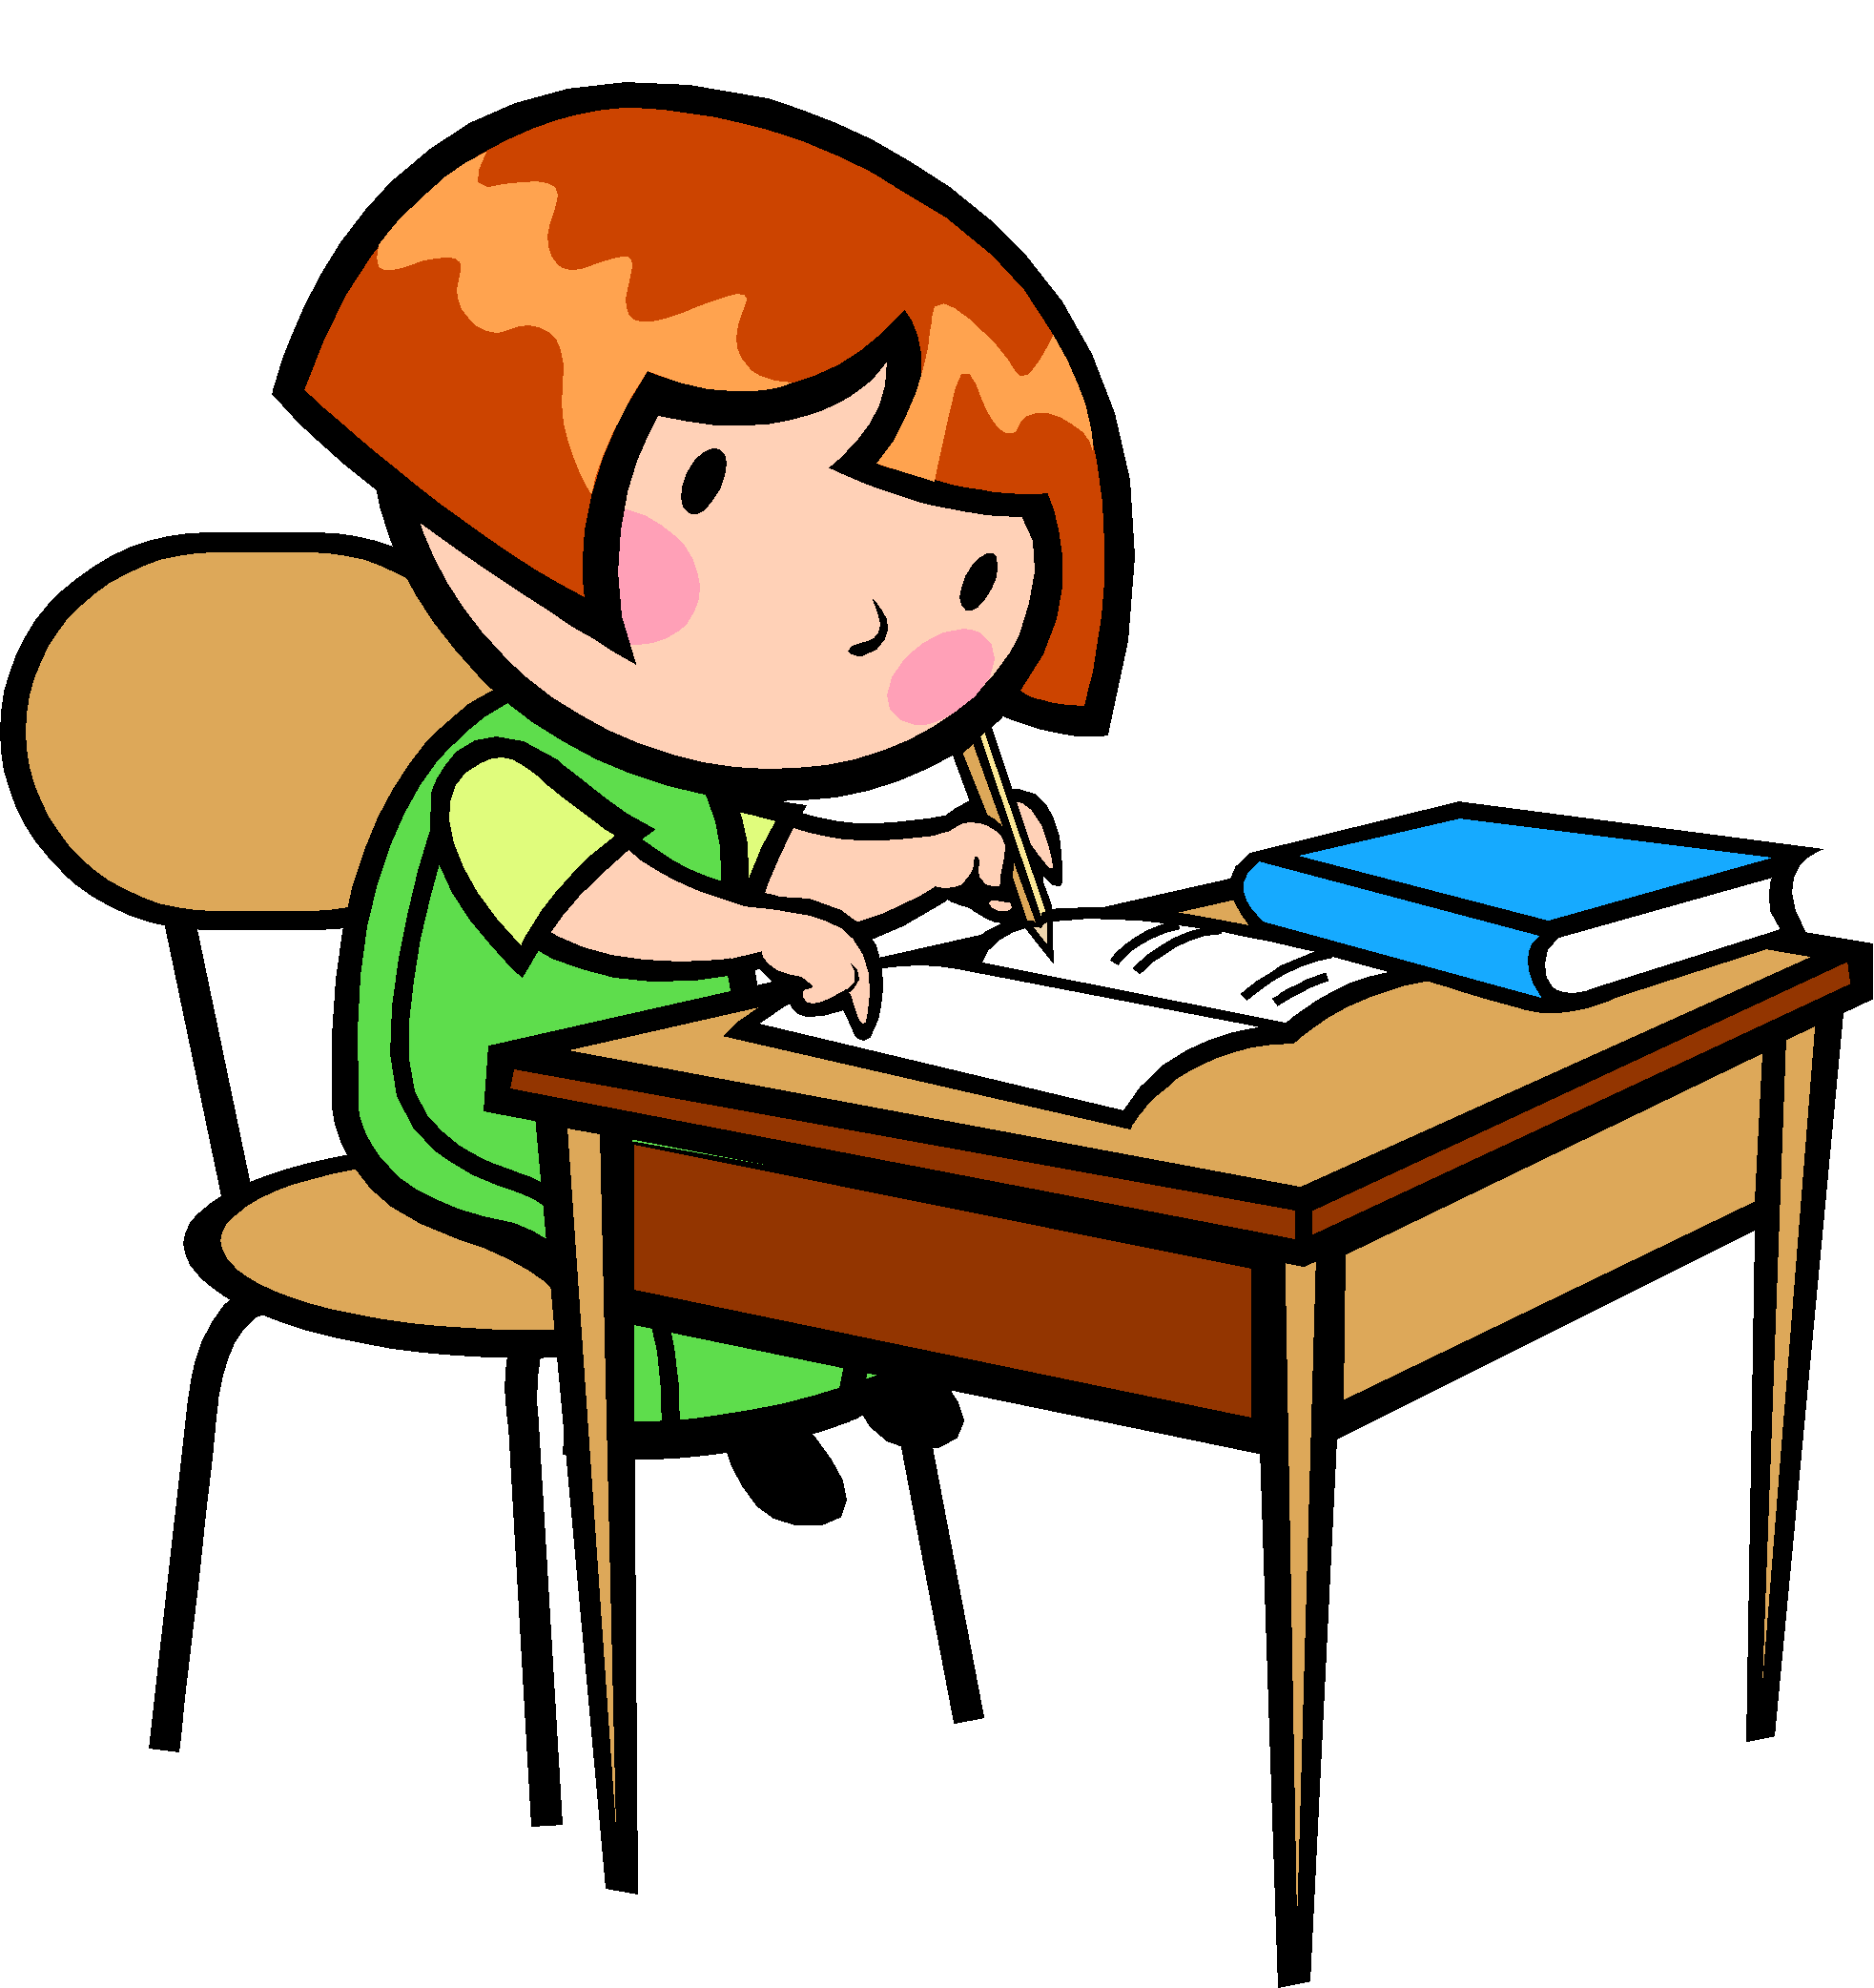 Writing tablet clipart kids clip library download Free Images Of Children Writing, Download Free Clip Art ... clip library download